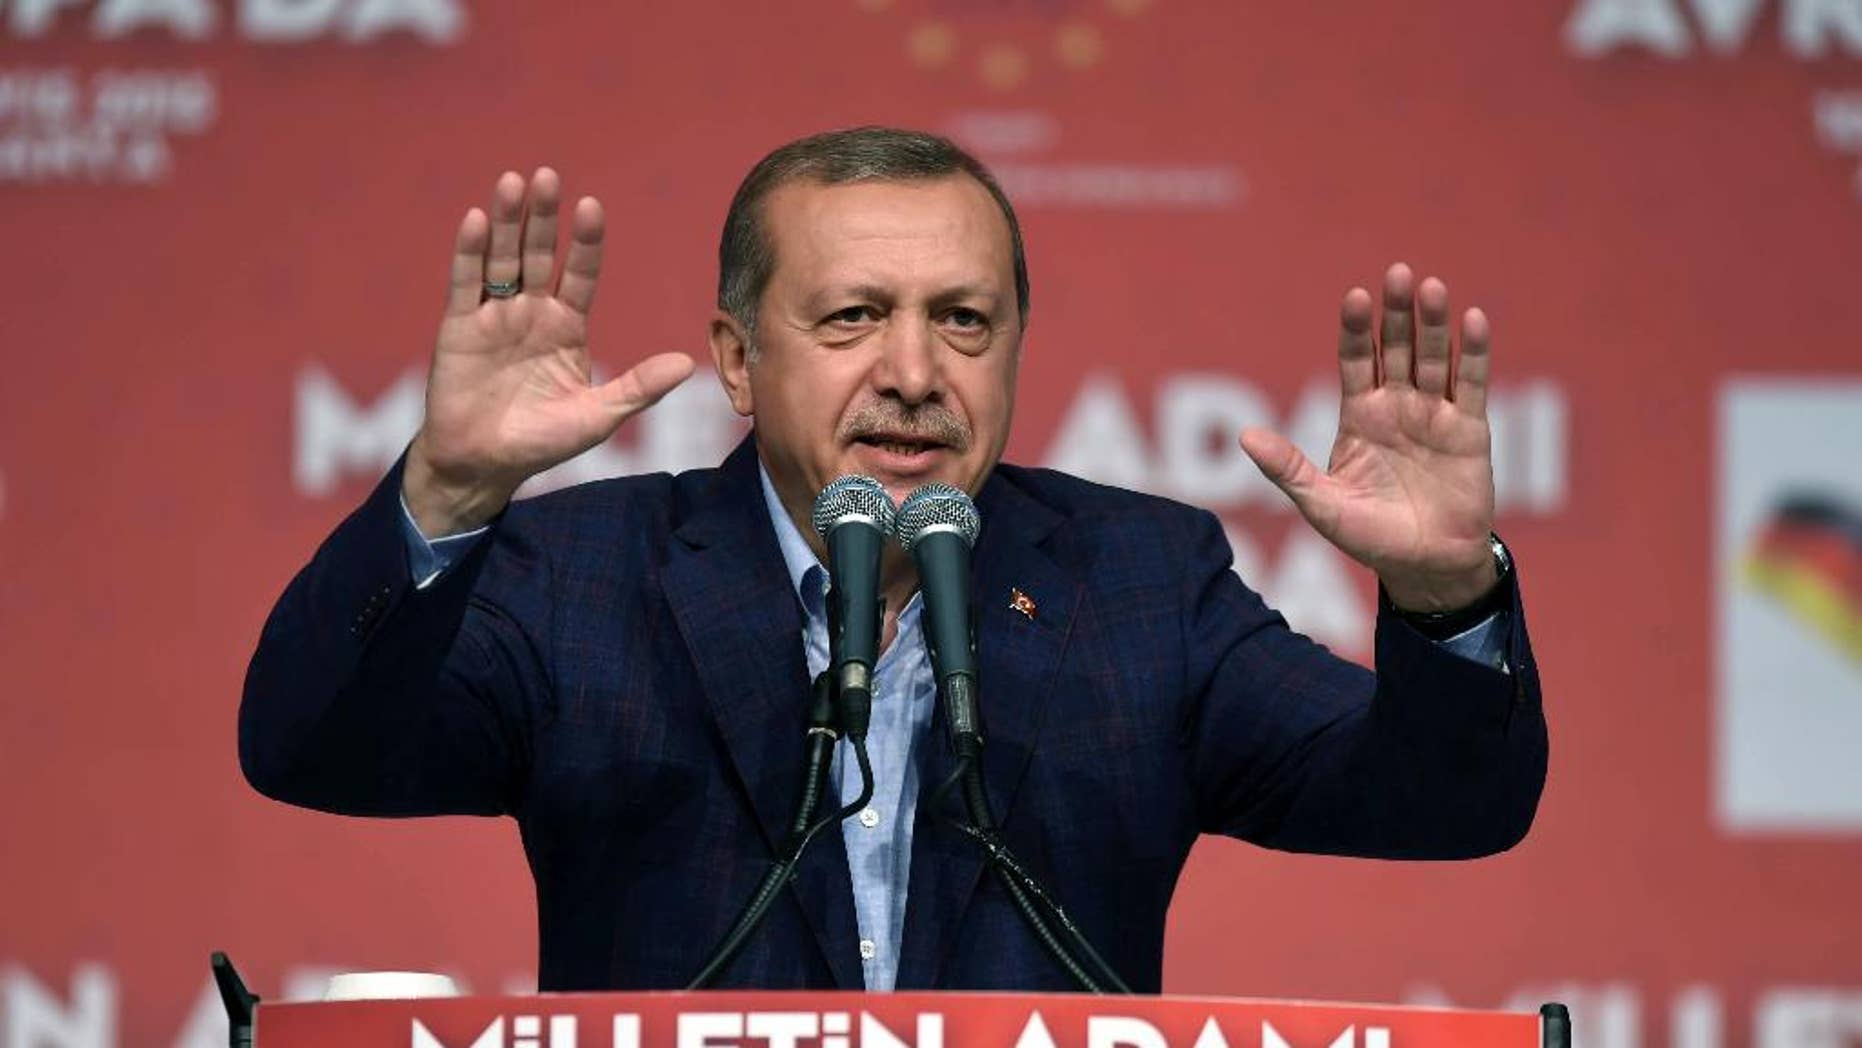 Turkish President Recep Tayyip Erdogan delivers a speech in an exhibition hall in Karlsruhe,Germany, Sunday, May 10, 2015. Erdogan has urged compatriots during his appearance to preserve their homeland's values and language and to vote ahead of upcoming Turkish elections. (Ulli Deck/dpa via AP)